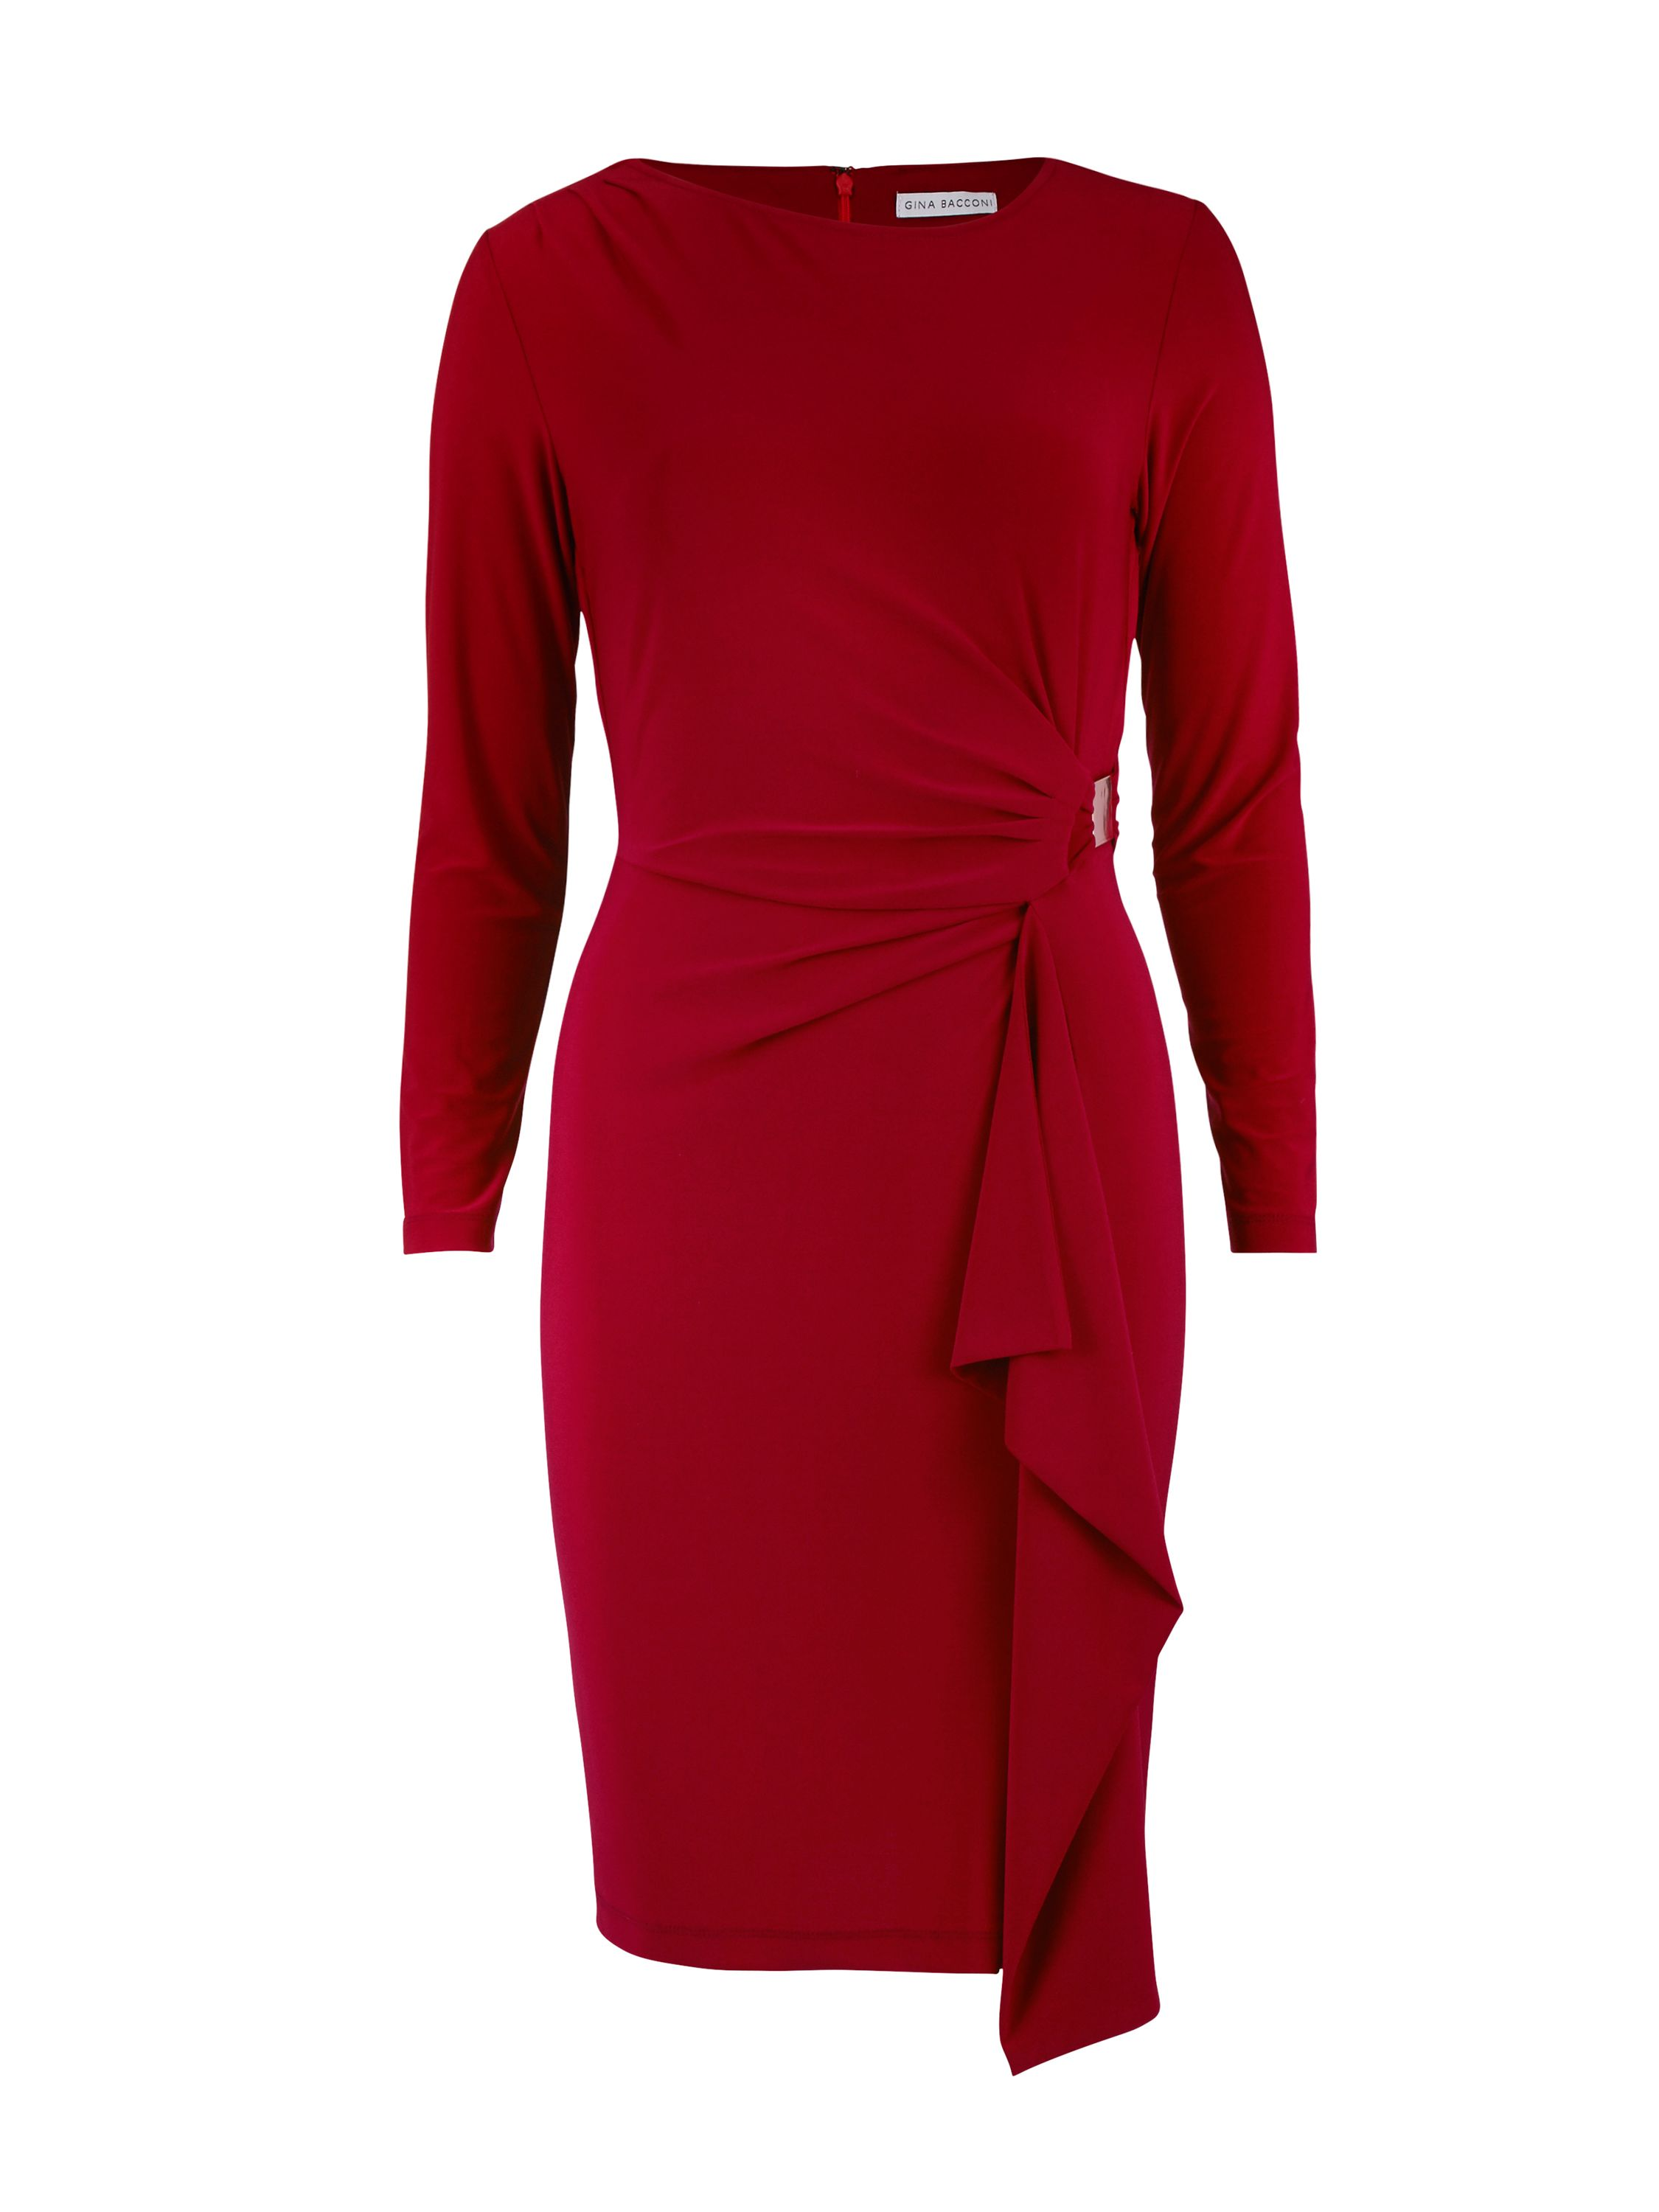 Gina Bacconi Gold Buckle Trim Jersey Dress, Red